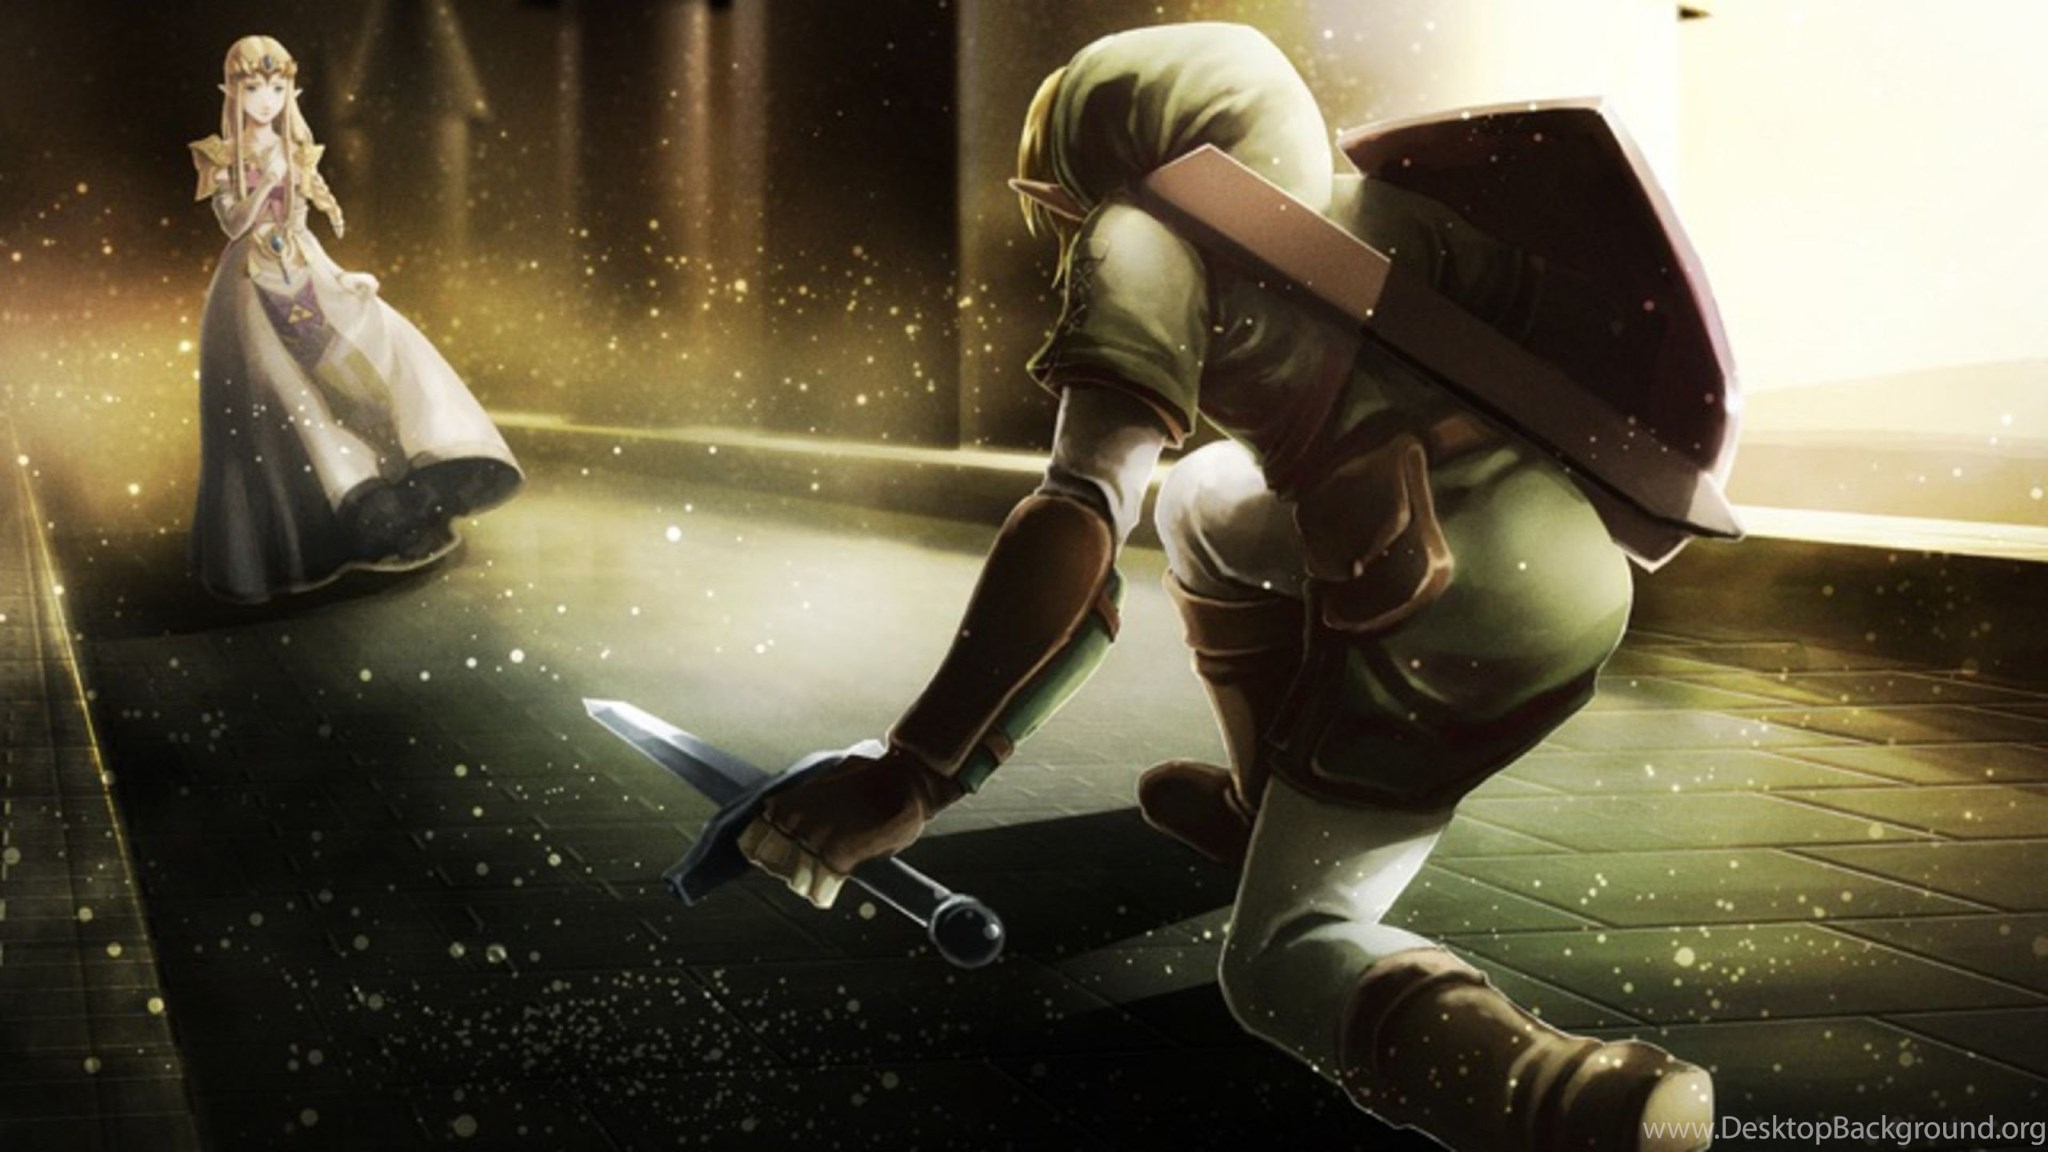 Download Wallpapers 2560x1440 The Legend Of Zelda Character Elf